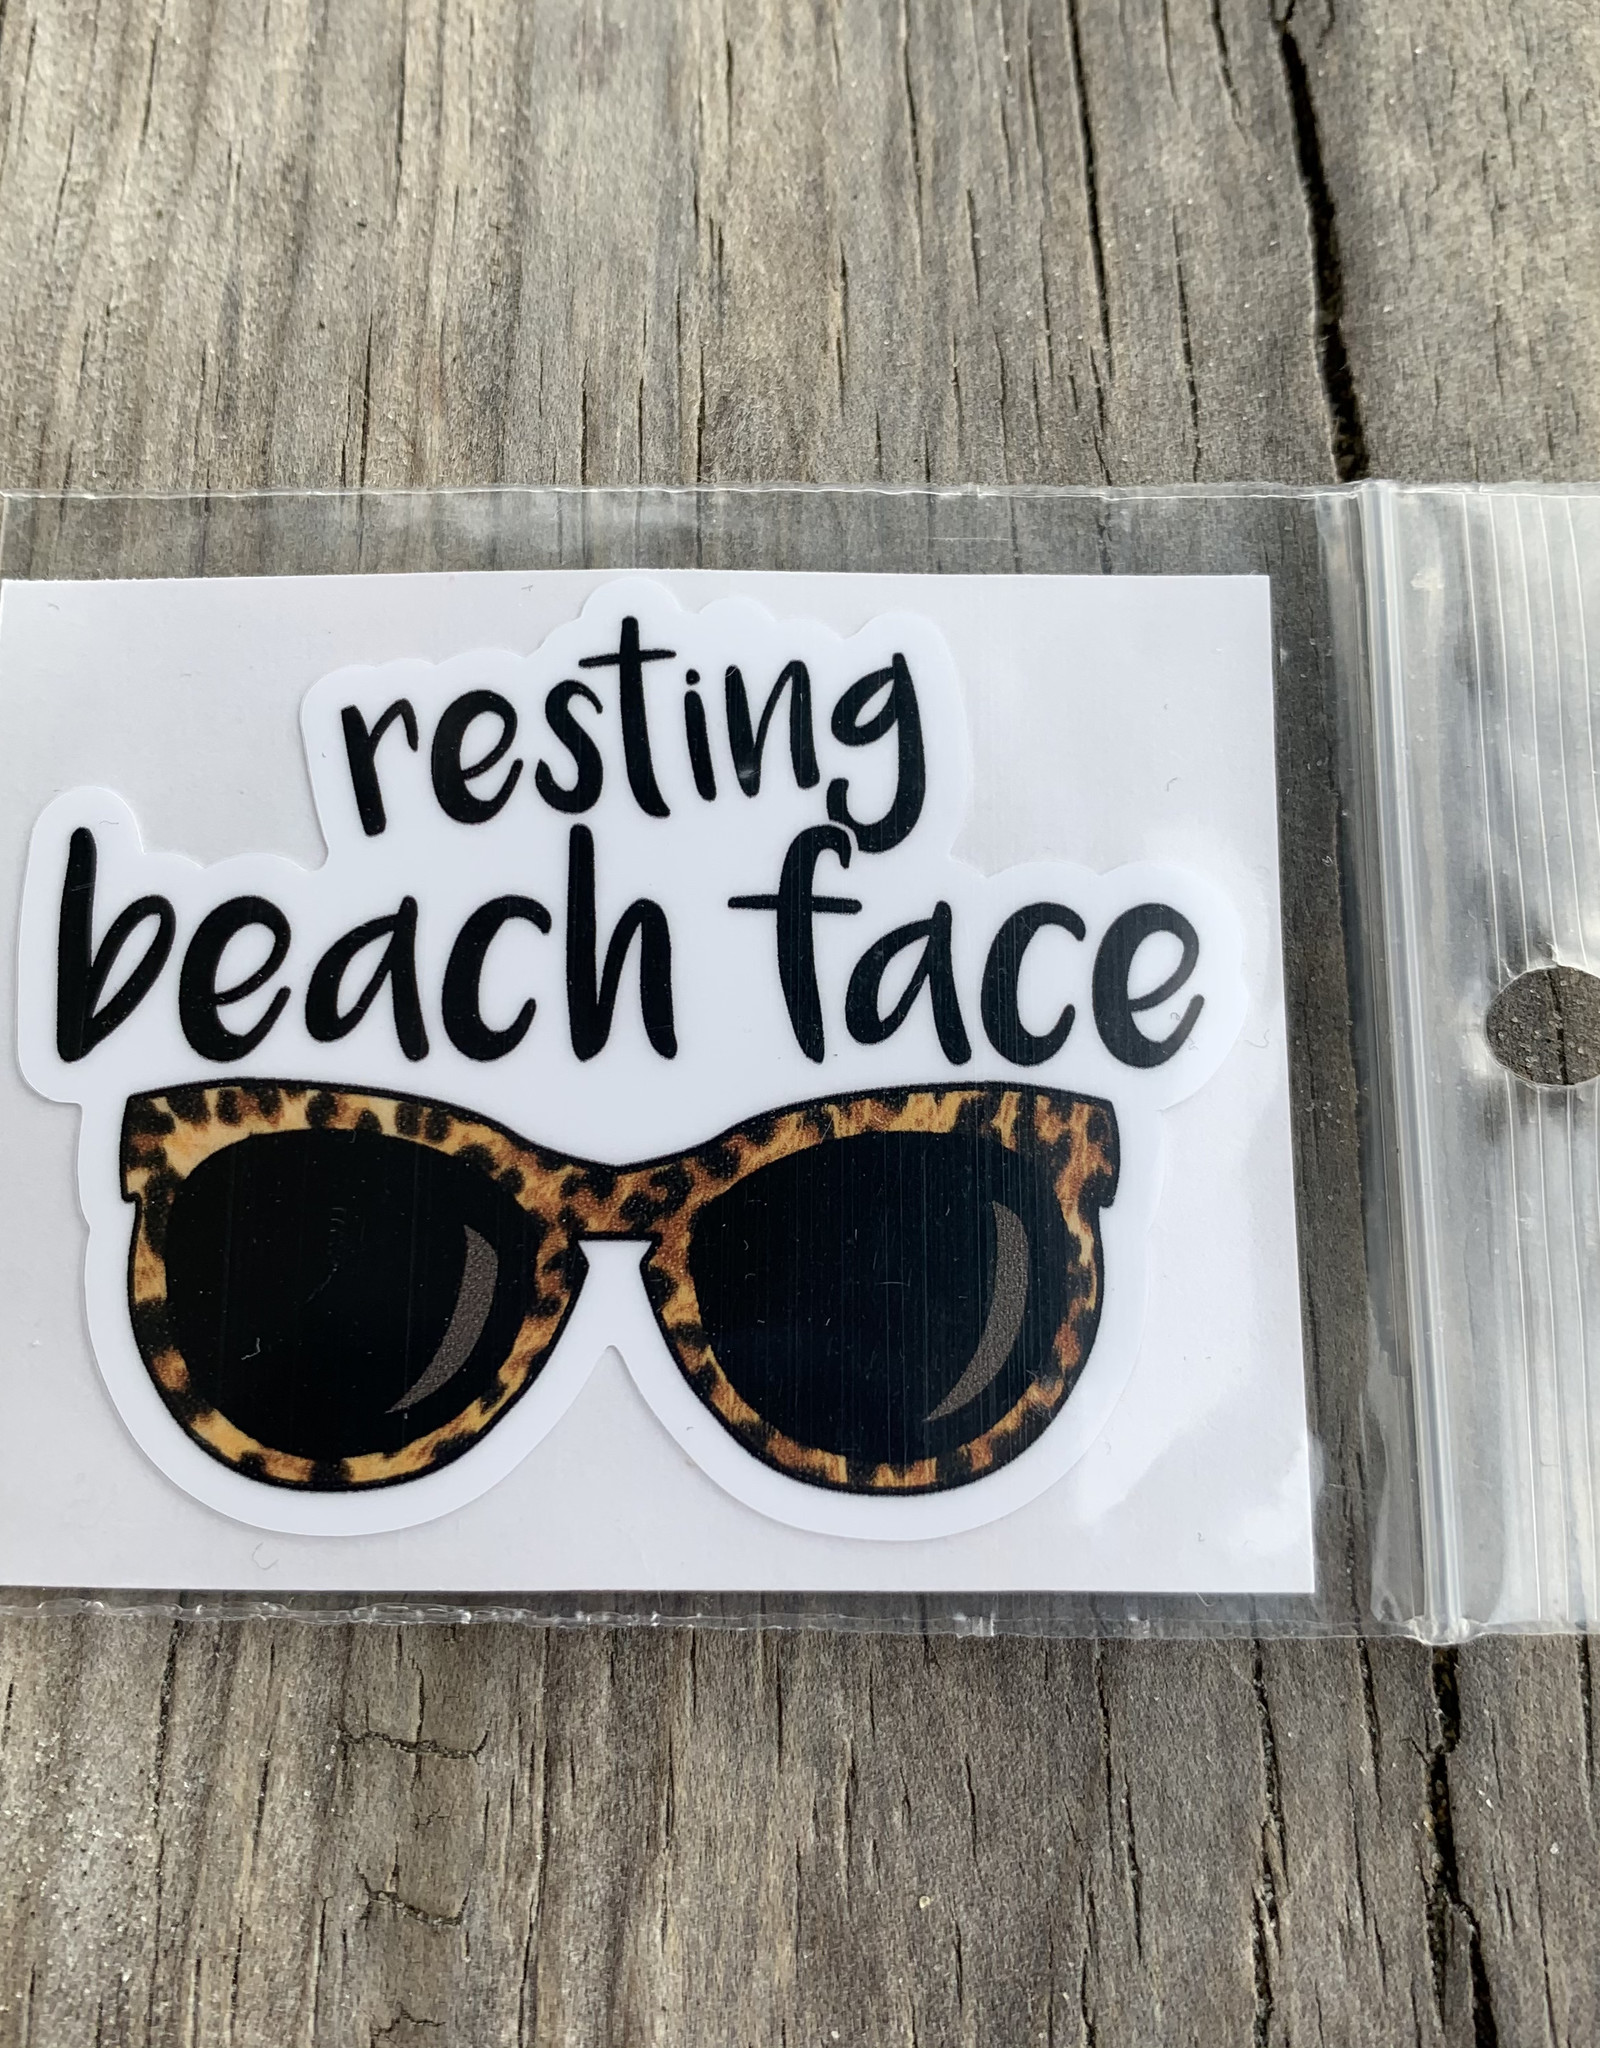 RESTING BEACH FACE STICKER (CELL)